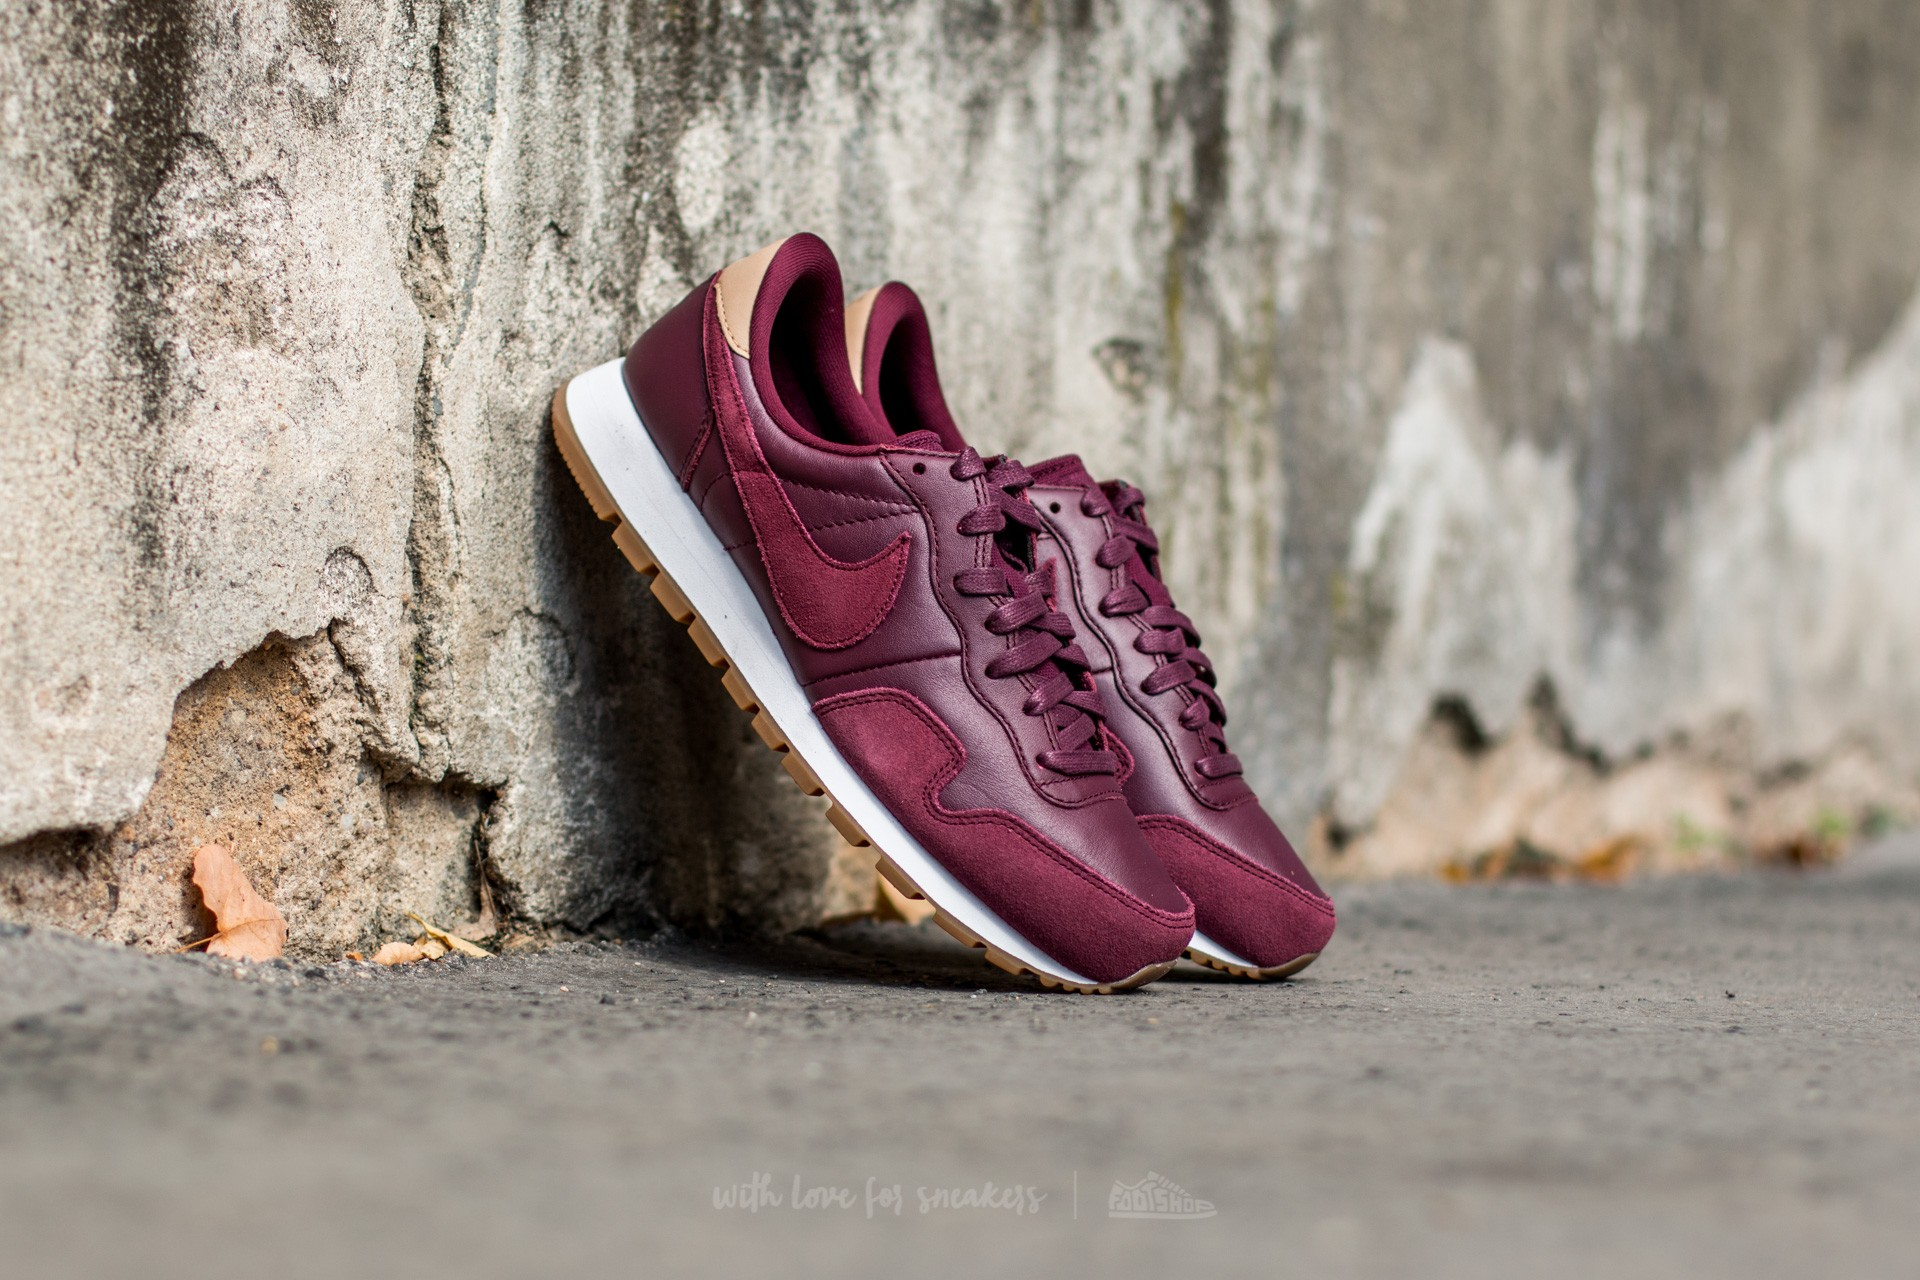 Nike Air Pegasus 83 Premium Night Maroon/ Night Maroon-Black-Vachetta Tan